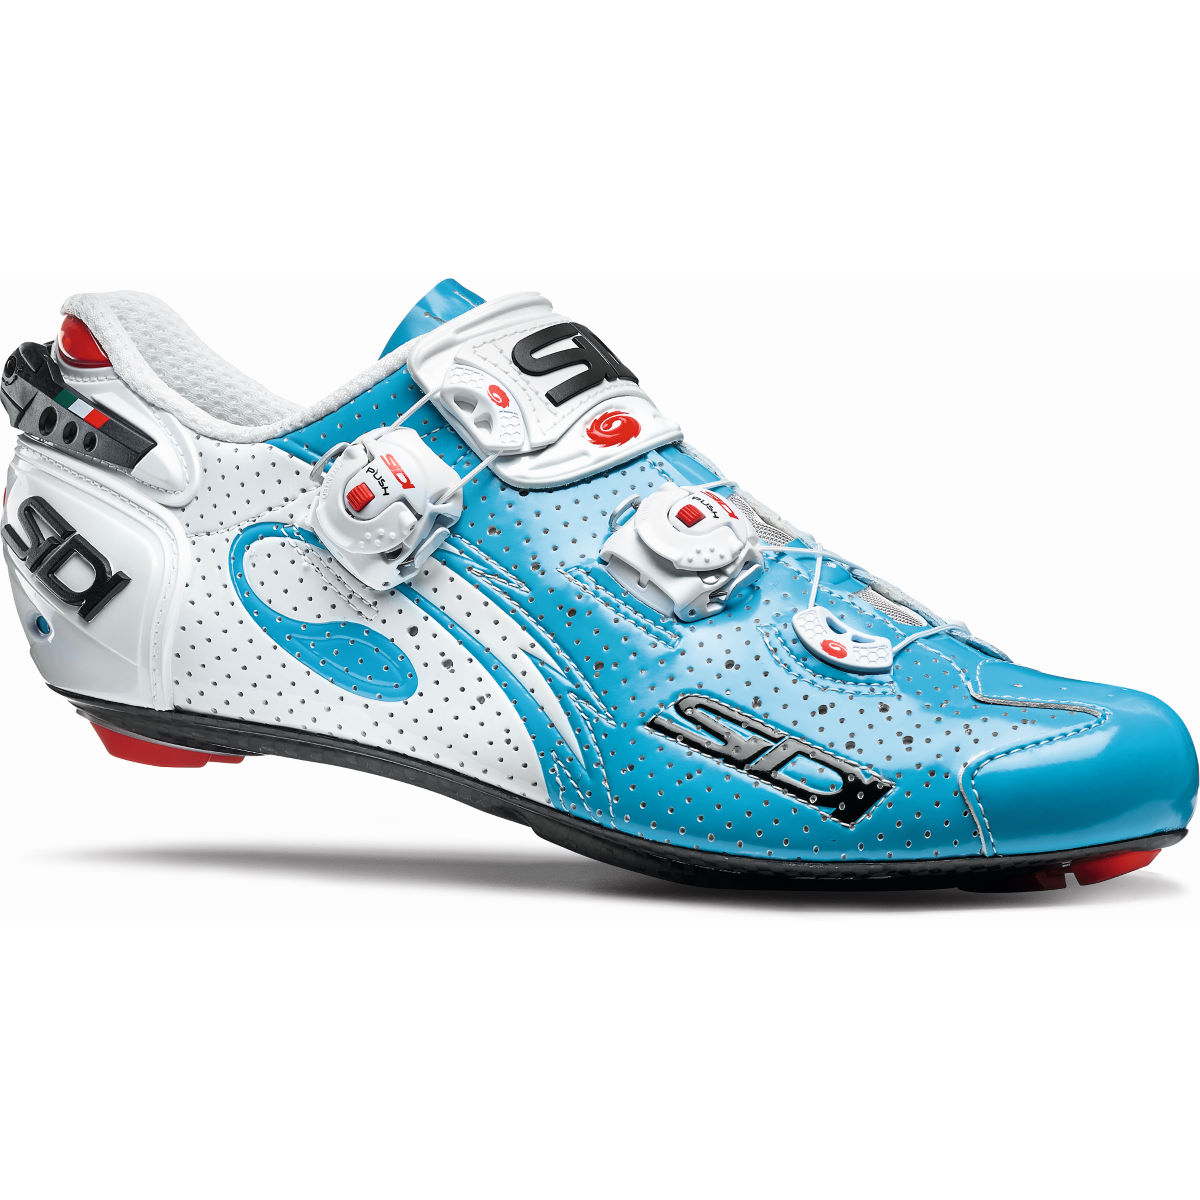 Sidi Wire Carbon Air Vernice - 46 Blue/White | Road Shoes